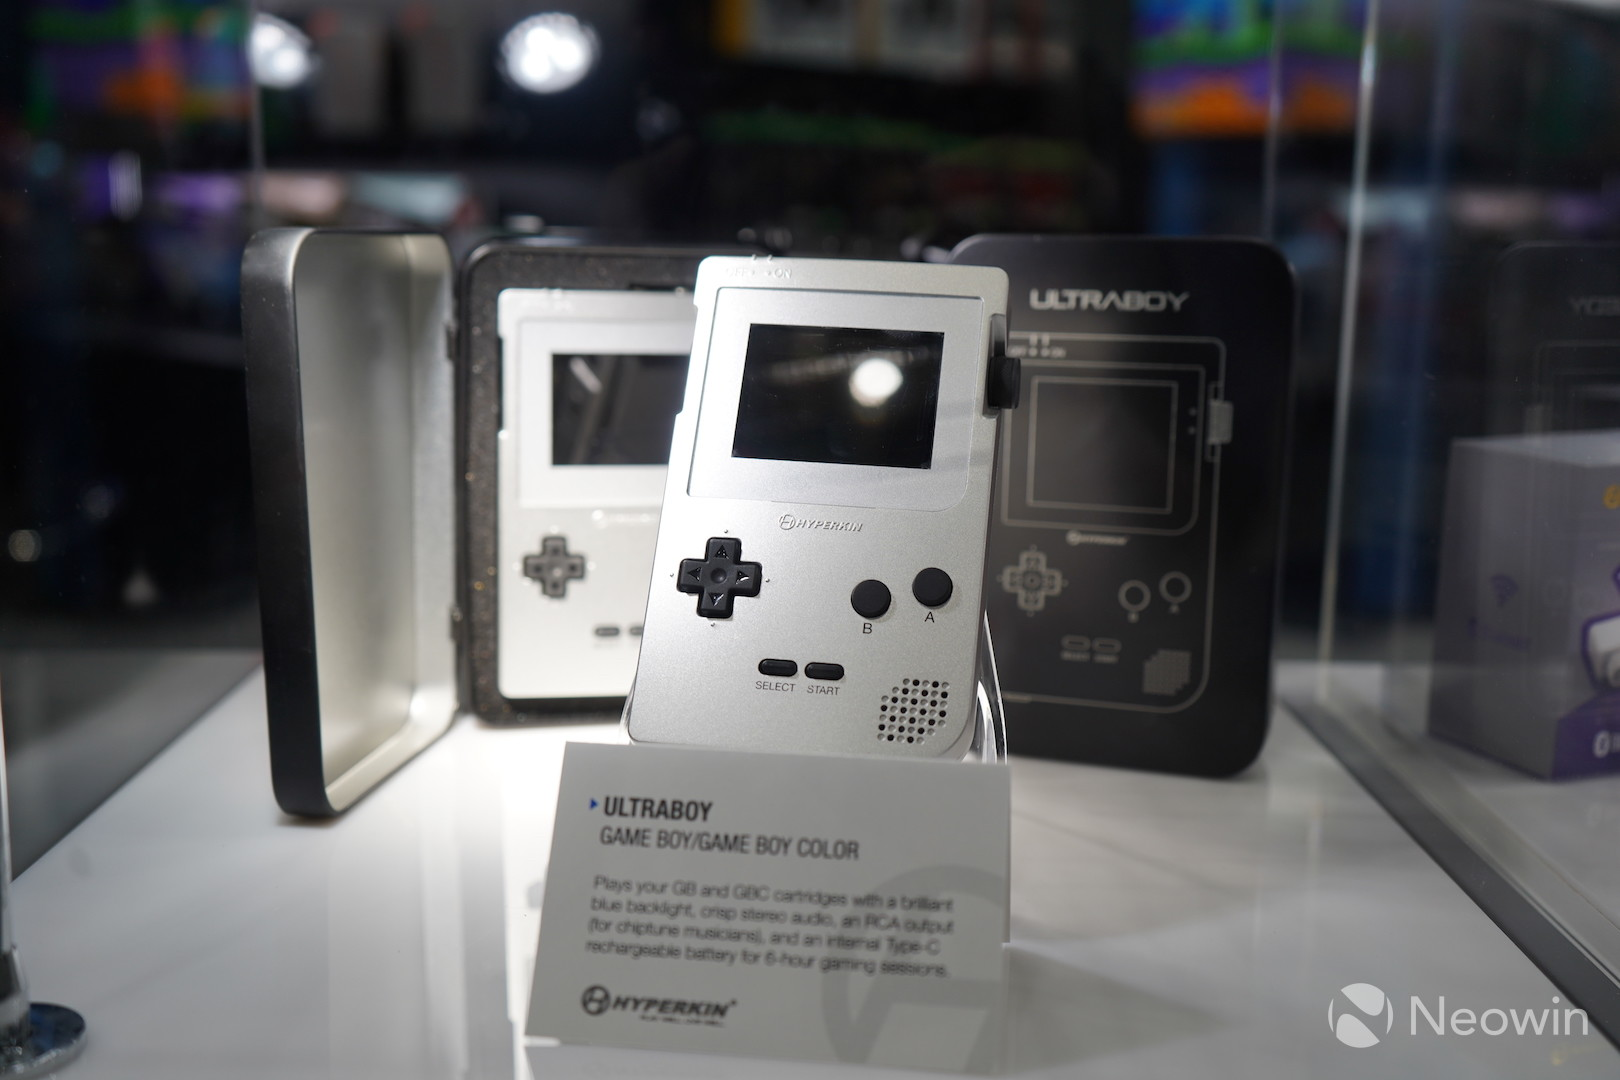 Hyperkin's Game Boy remake shows up at E3 2018 - Neowin